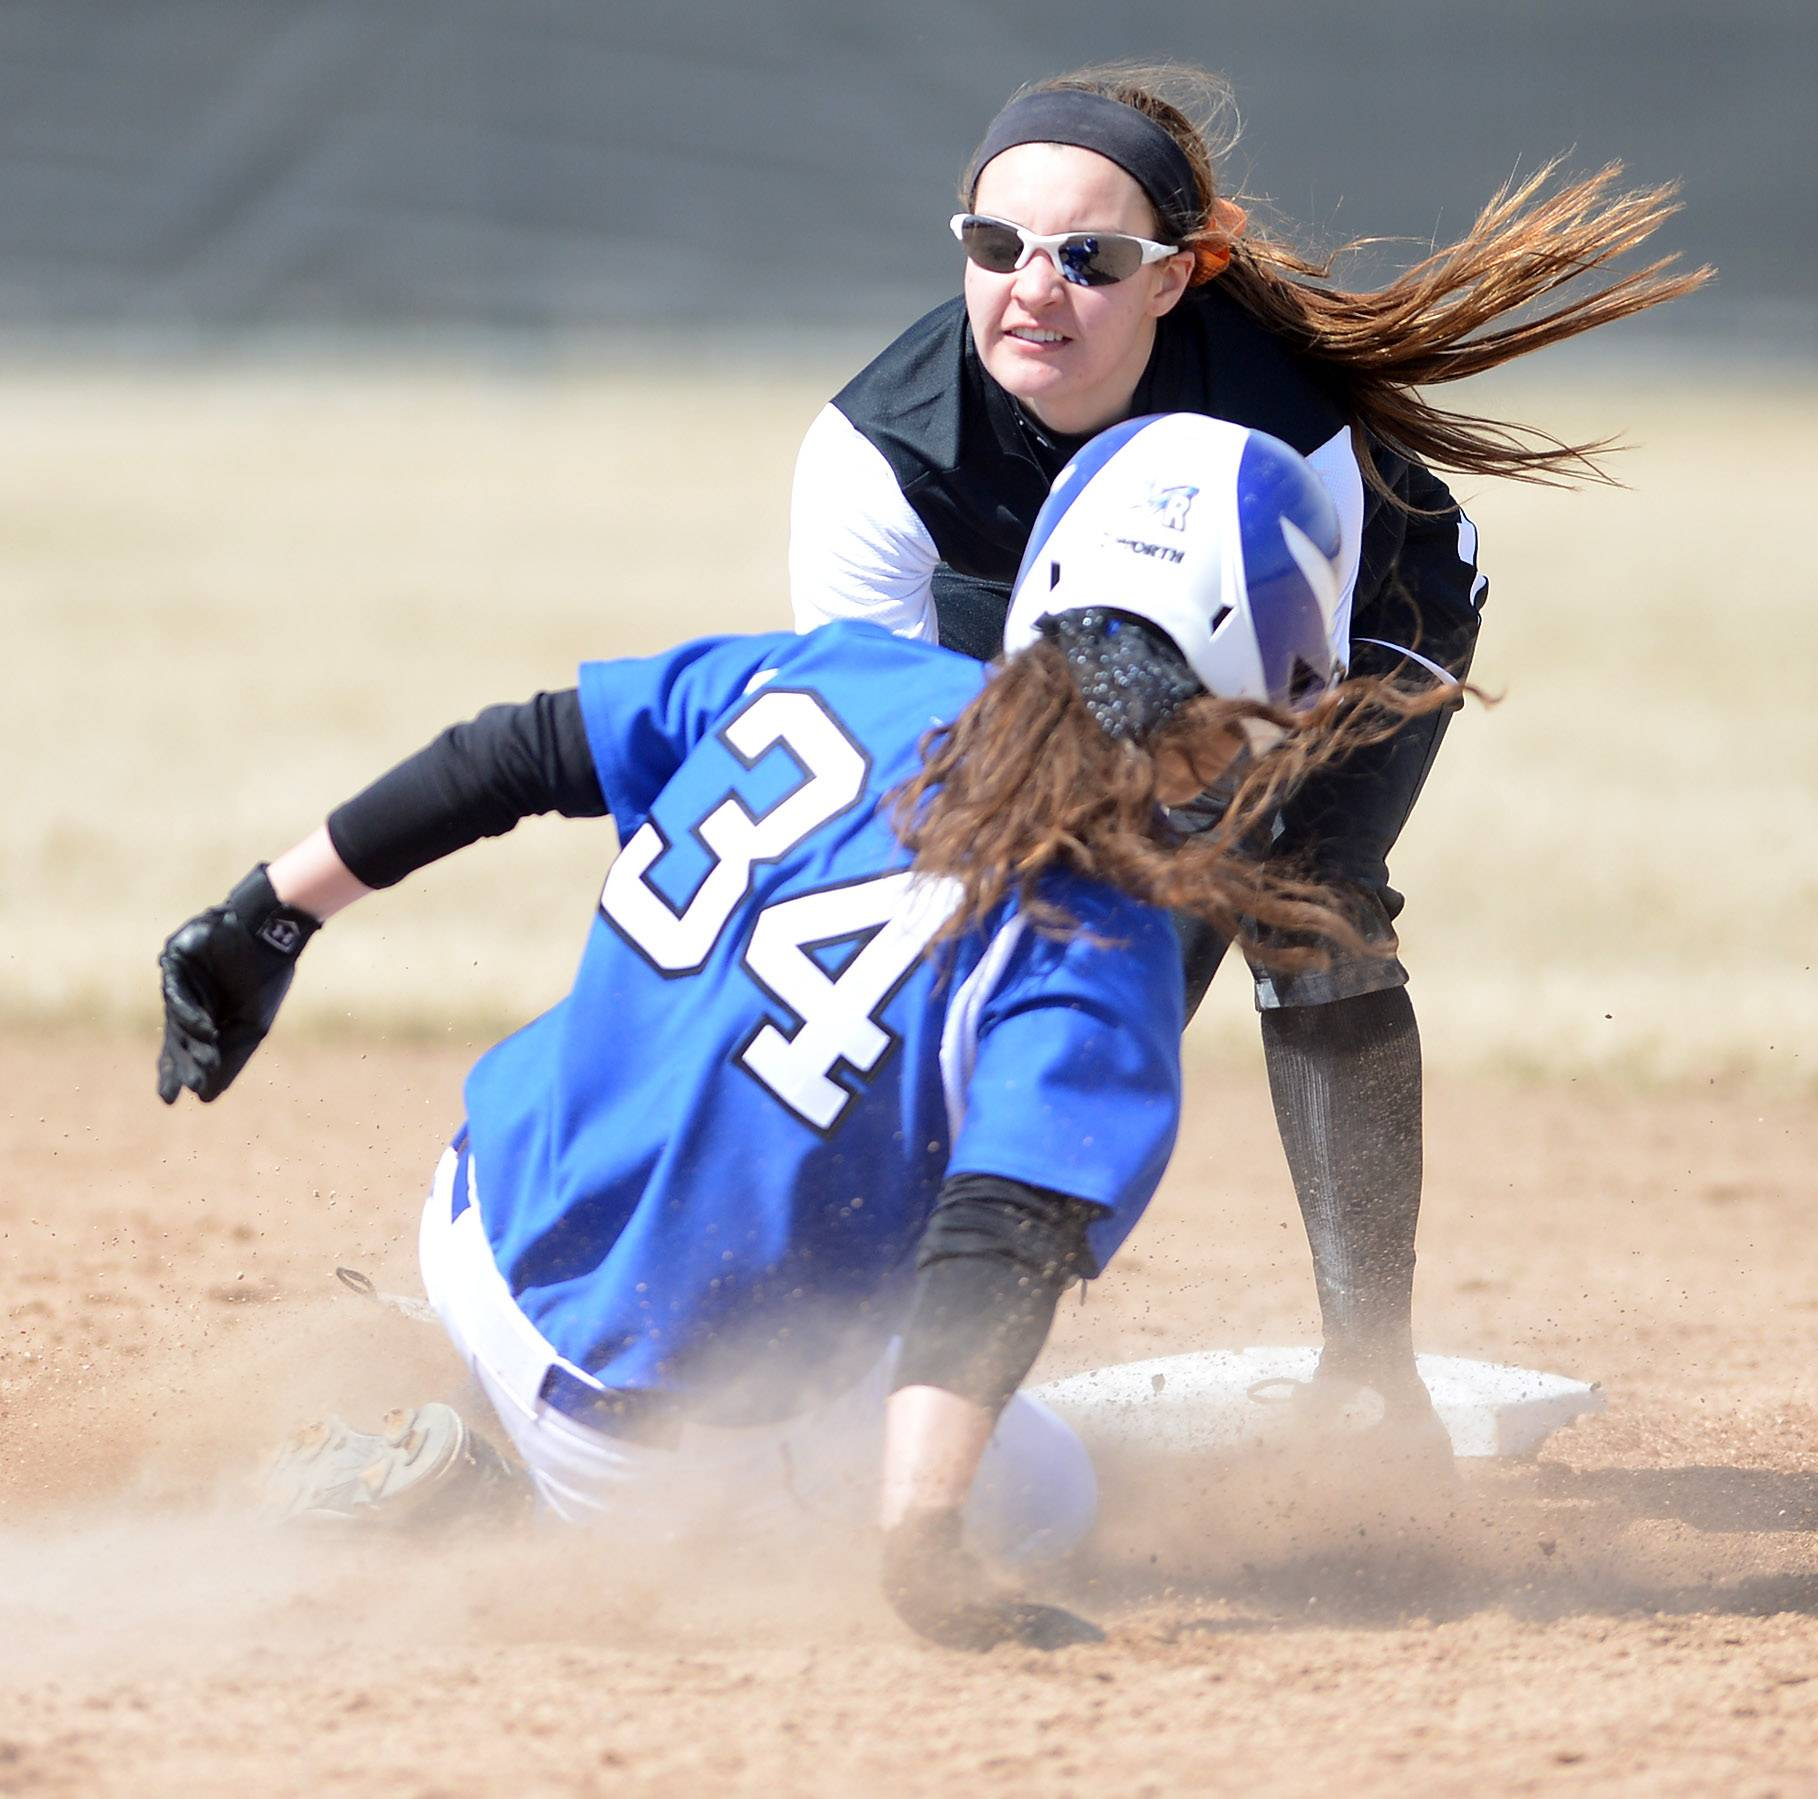 St. Charles East's Tess Hupe tags out Burlington Central's Shelby Young at second during Monday's game in St. Charles.